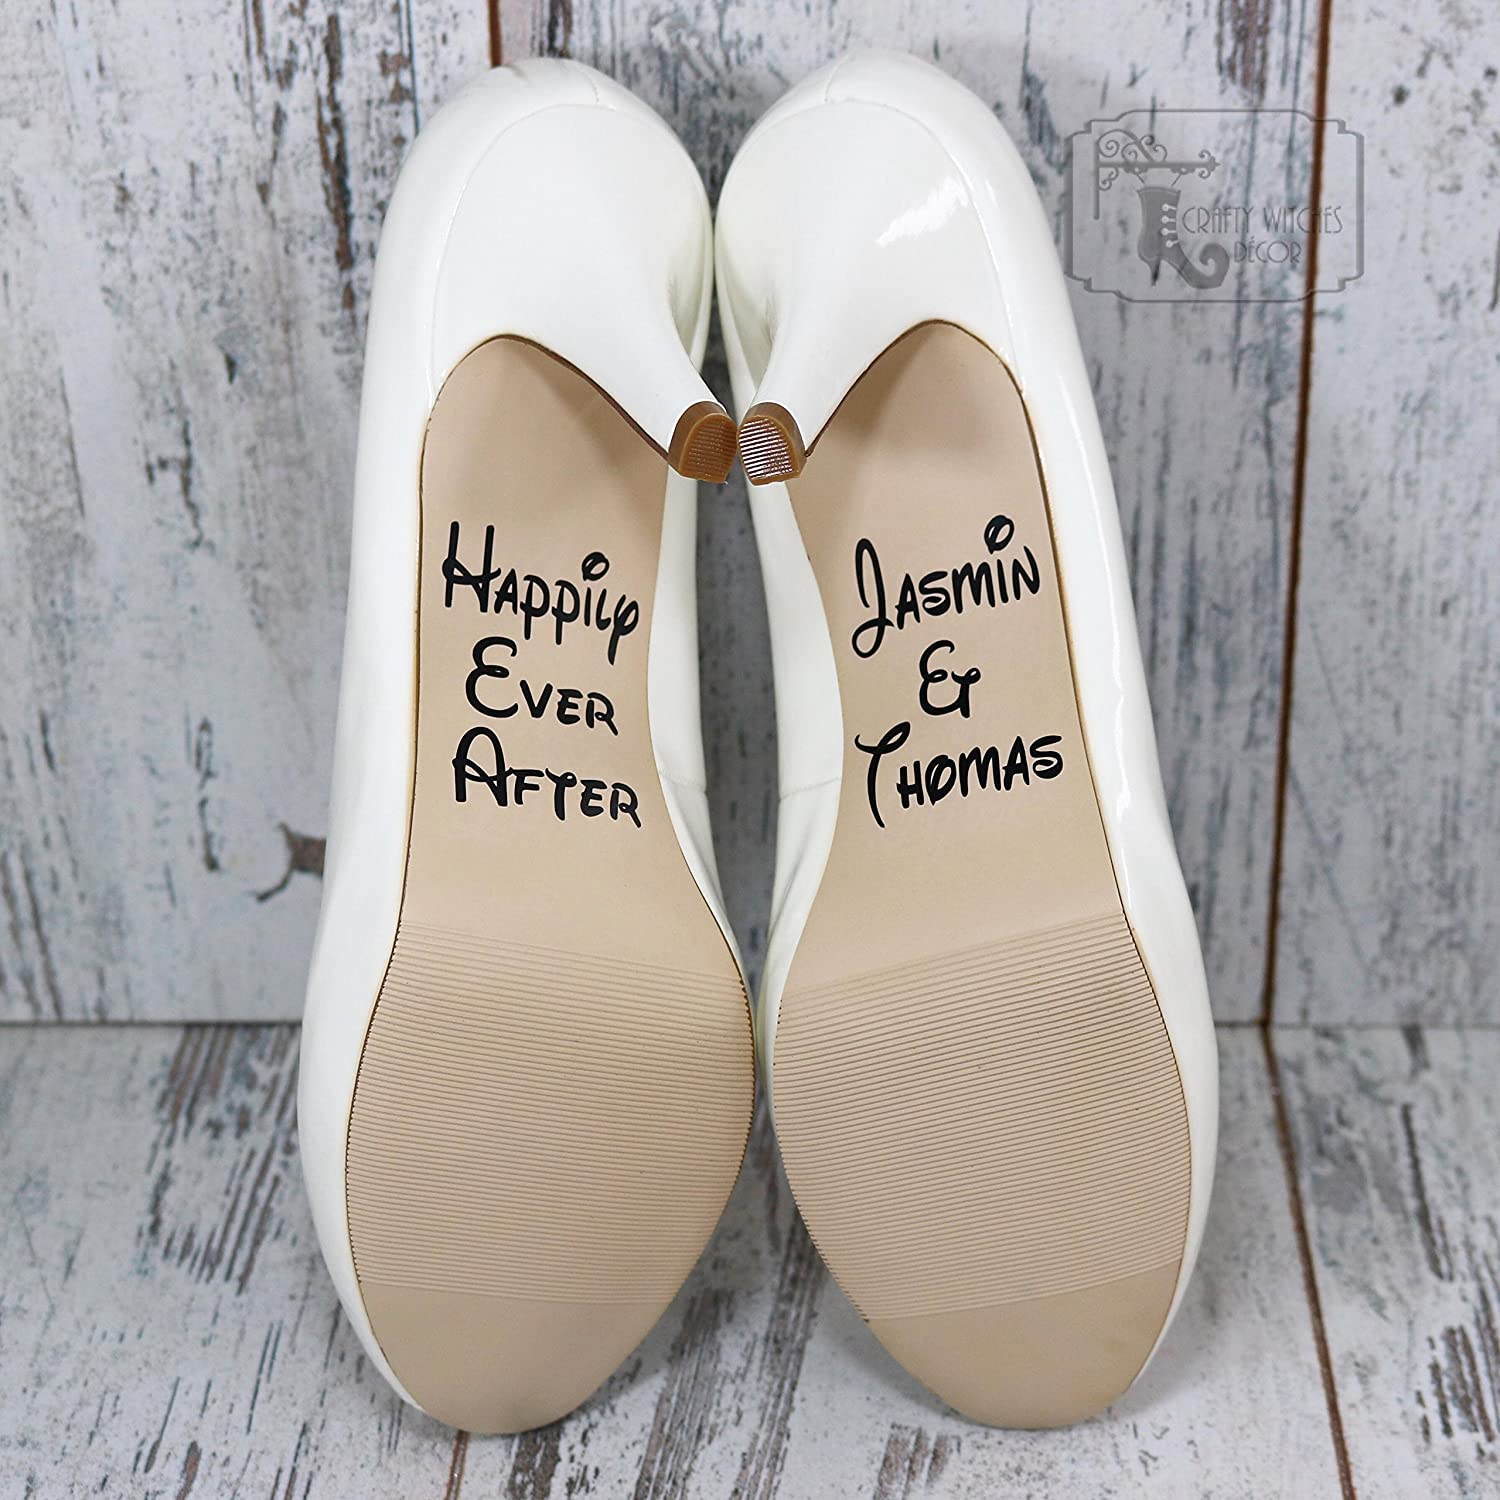 294f317109218 Amazon.com: Personalized Happily Ever After Wedding Shoe Decals ...